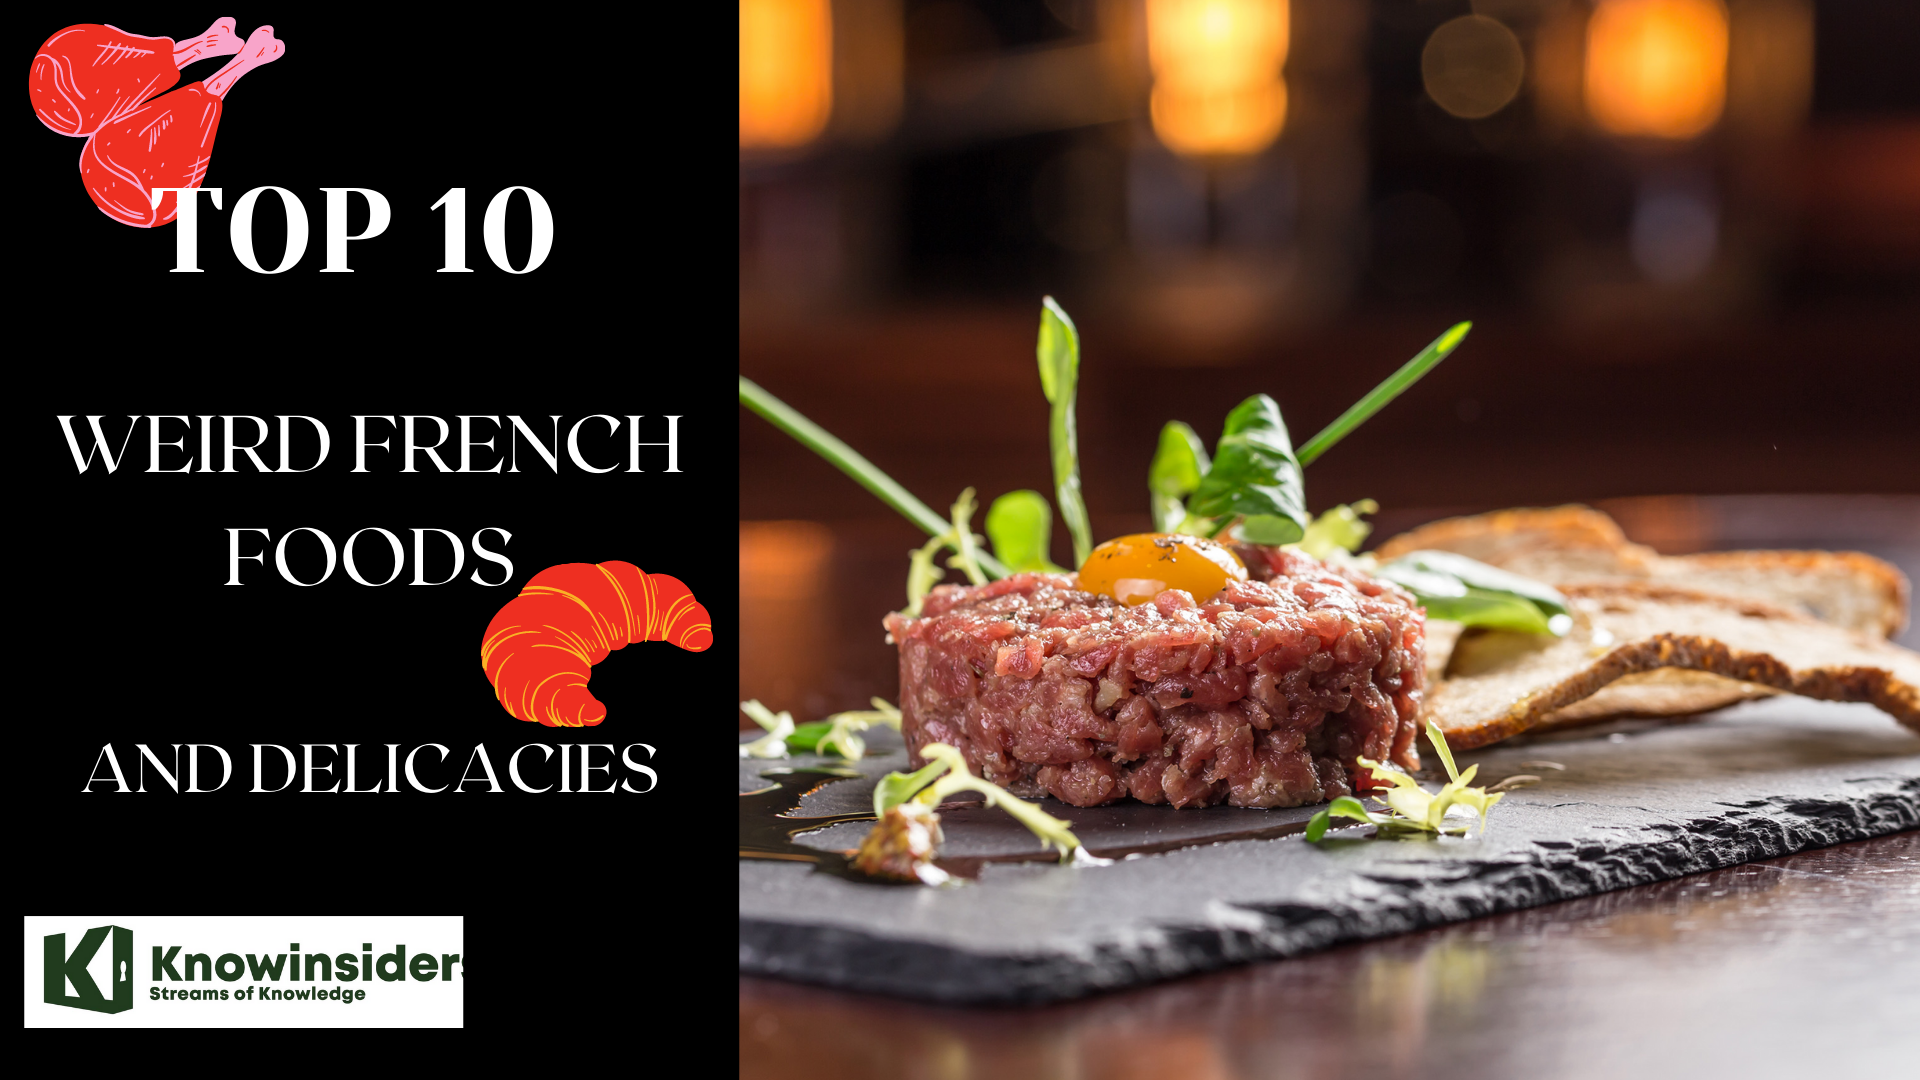 Top 11 French Foods -Weird & Delicacies